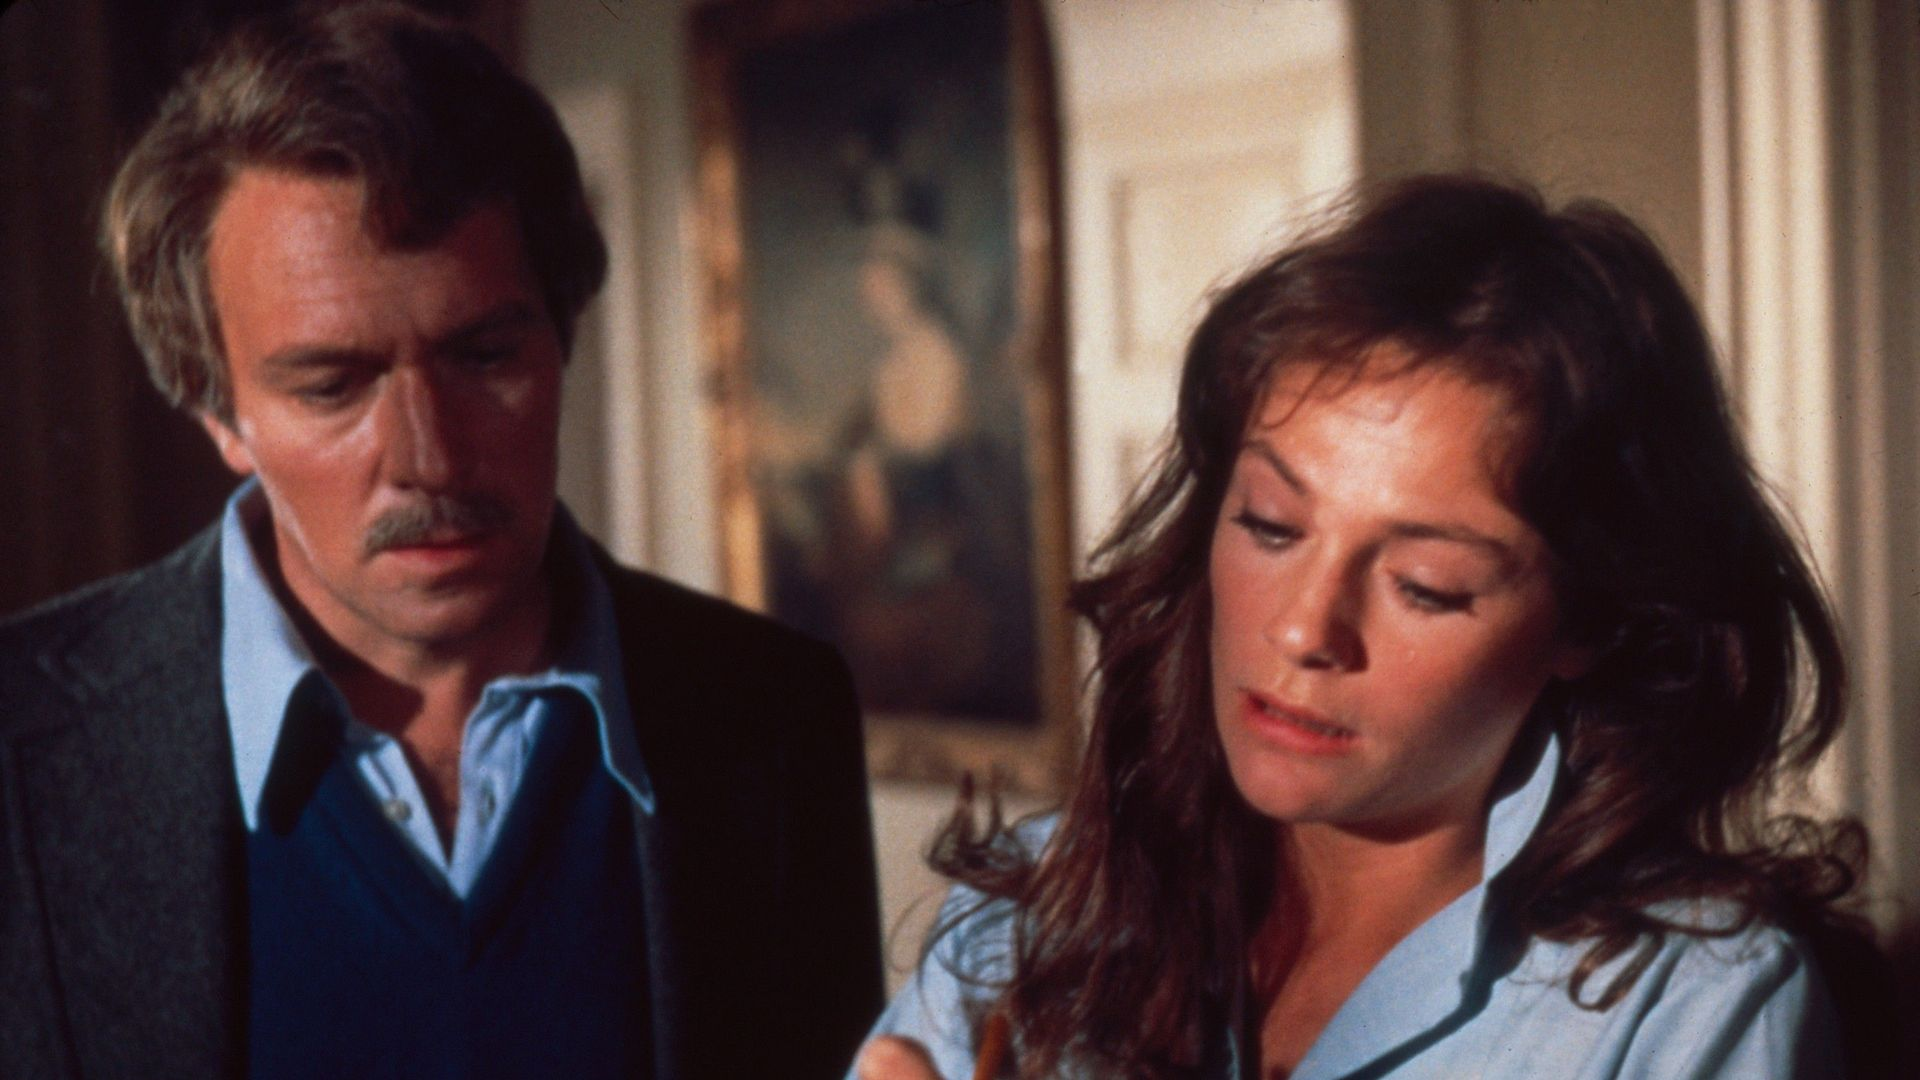 THE SPIRAL STAIRCASE, from left: Christopher Plummer, Jacqueline Bisset, 1975.